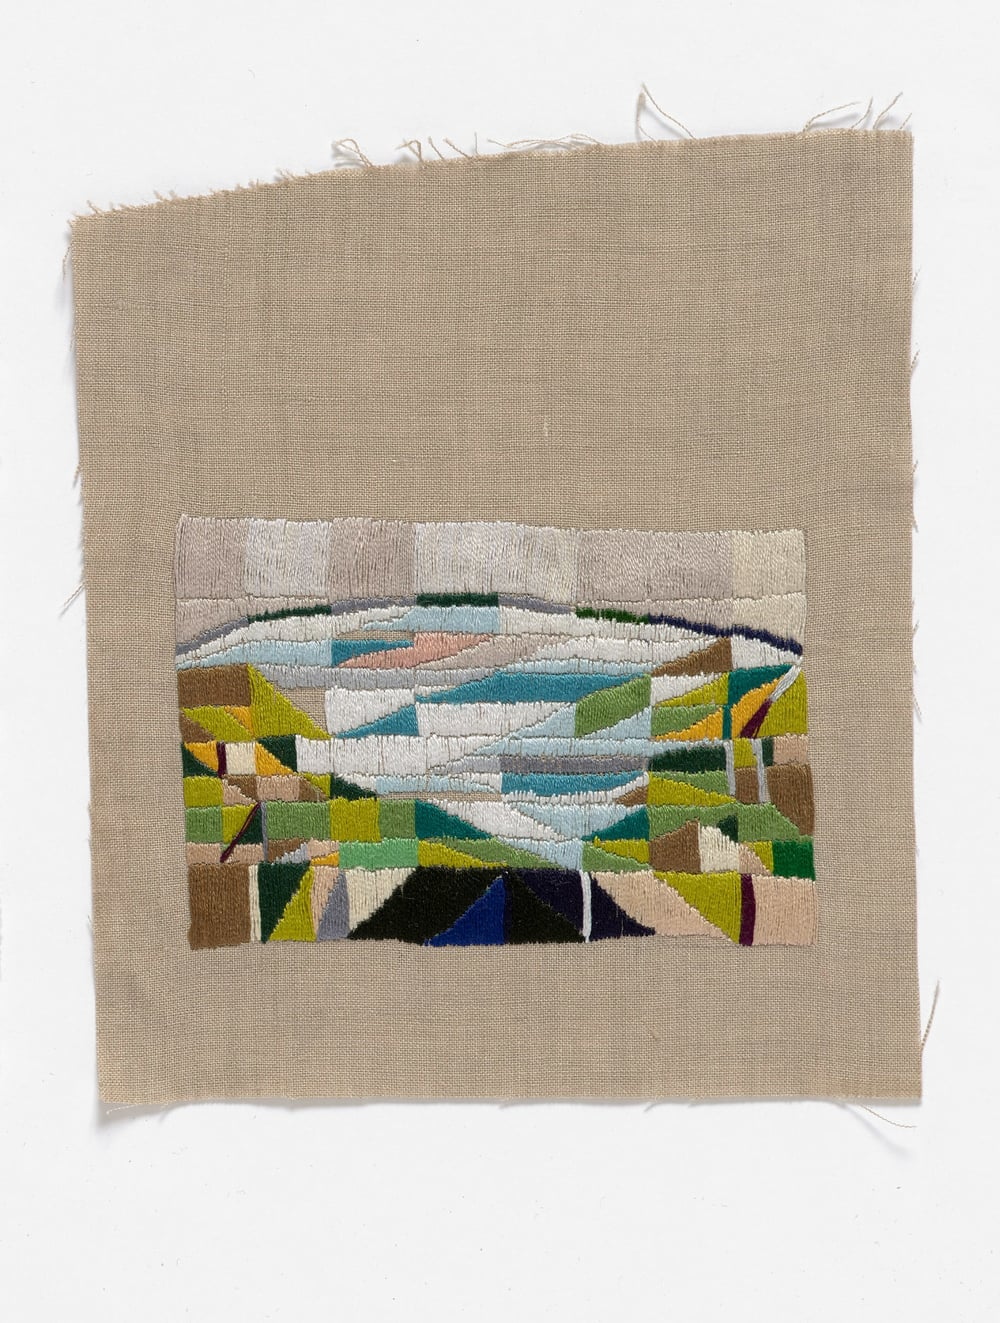 Roadtrip to Melinda's show 2015 Cotton thread on linen 17 x 20cm